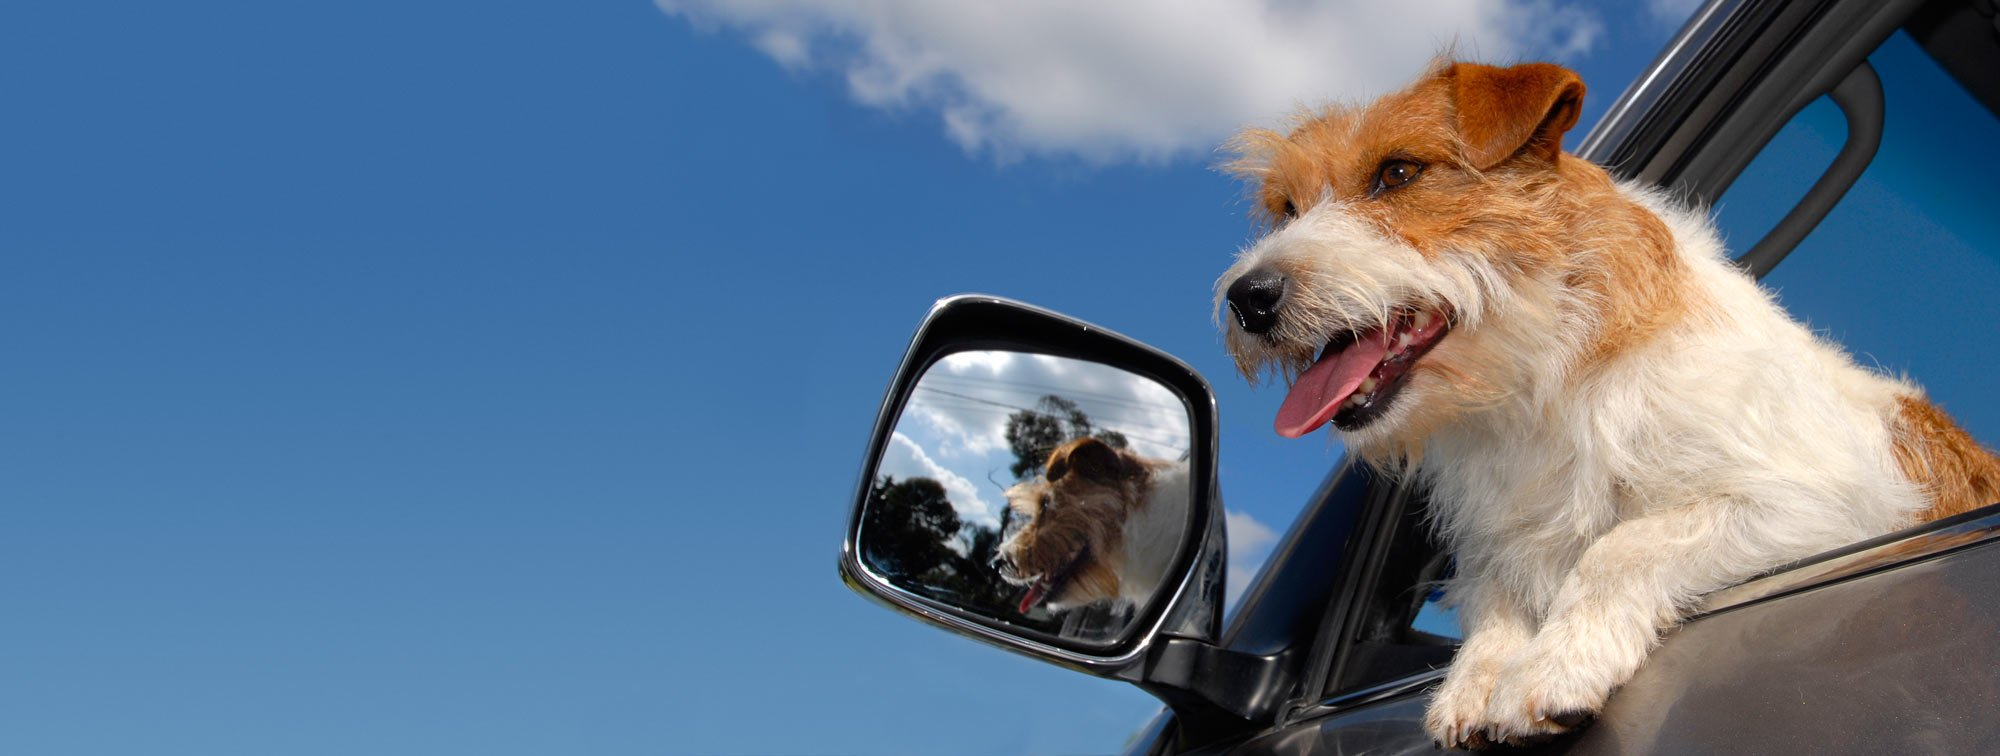 Pet Taxi Service, Boston